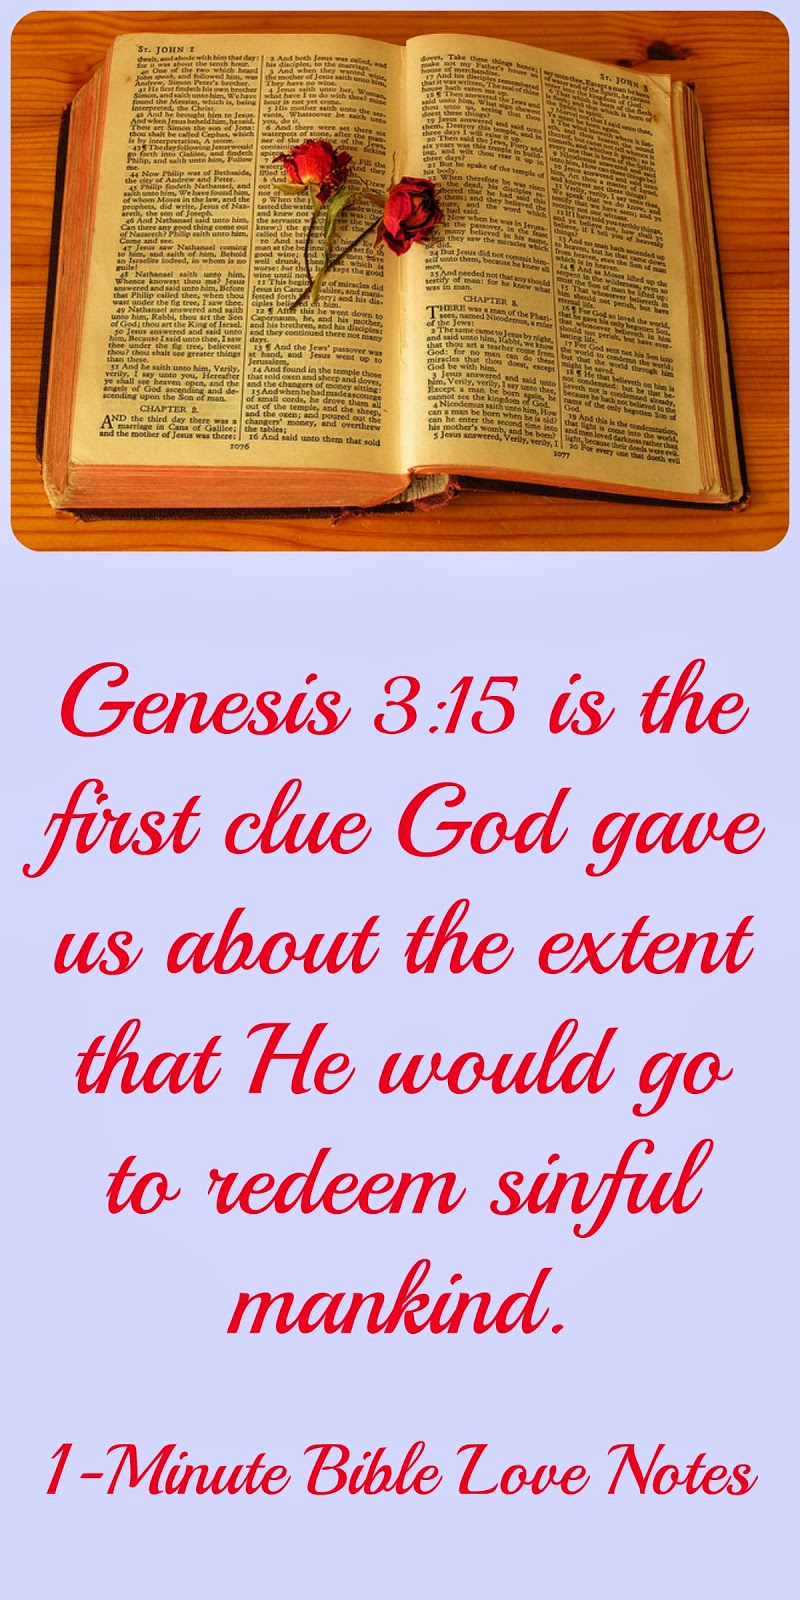 Genesis 3:15, Protoevangelium, prophecy of Christ in Genesis, the Fall, Adam's sin